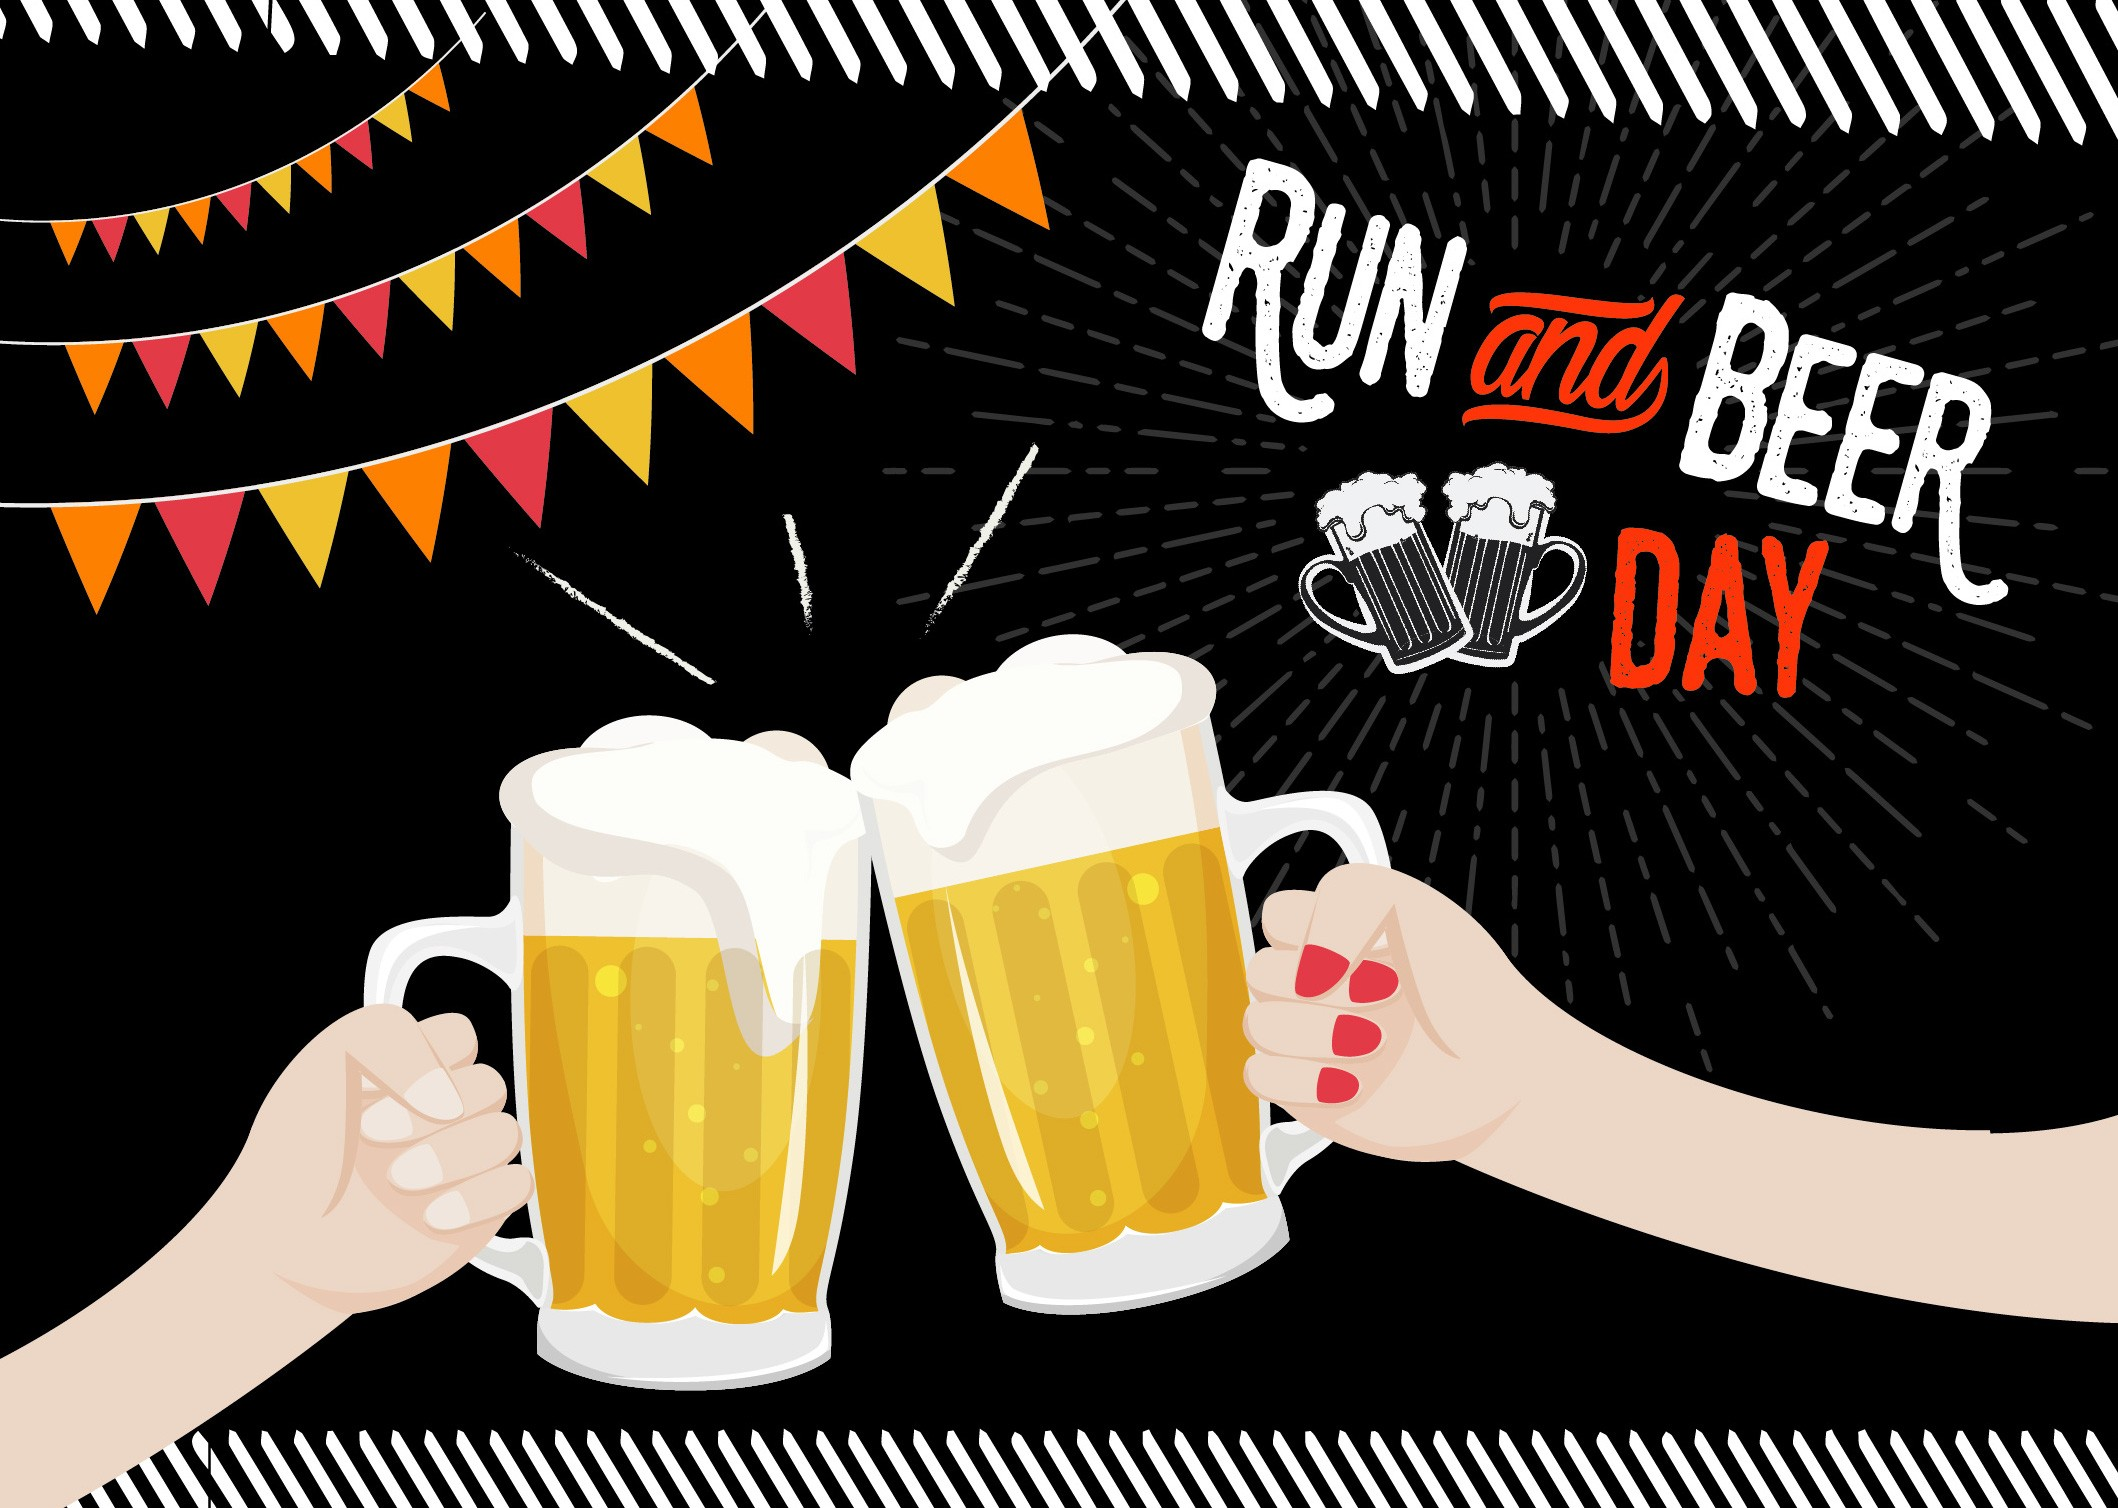 cheers - Run and Beer Day-01.jpg